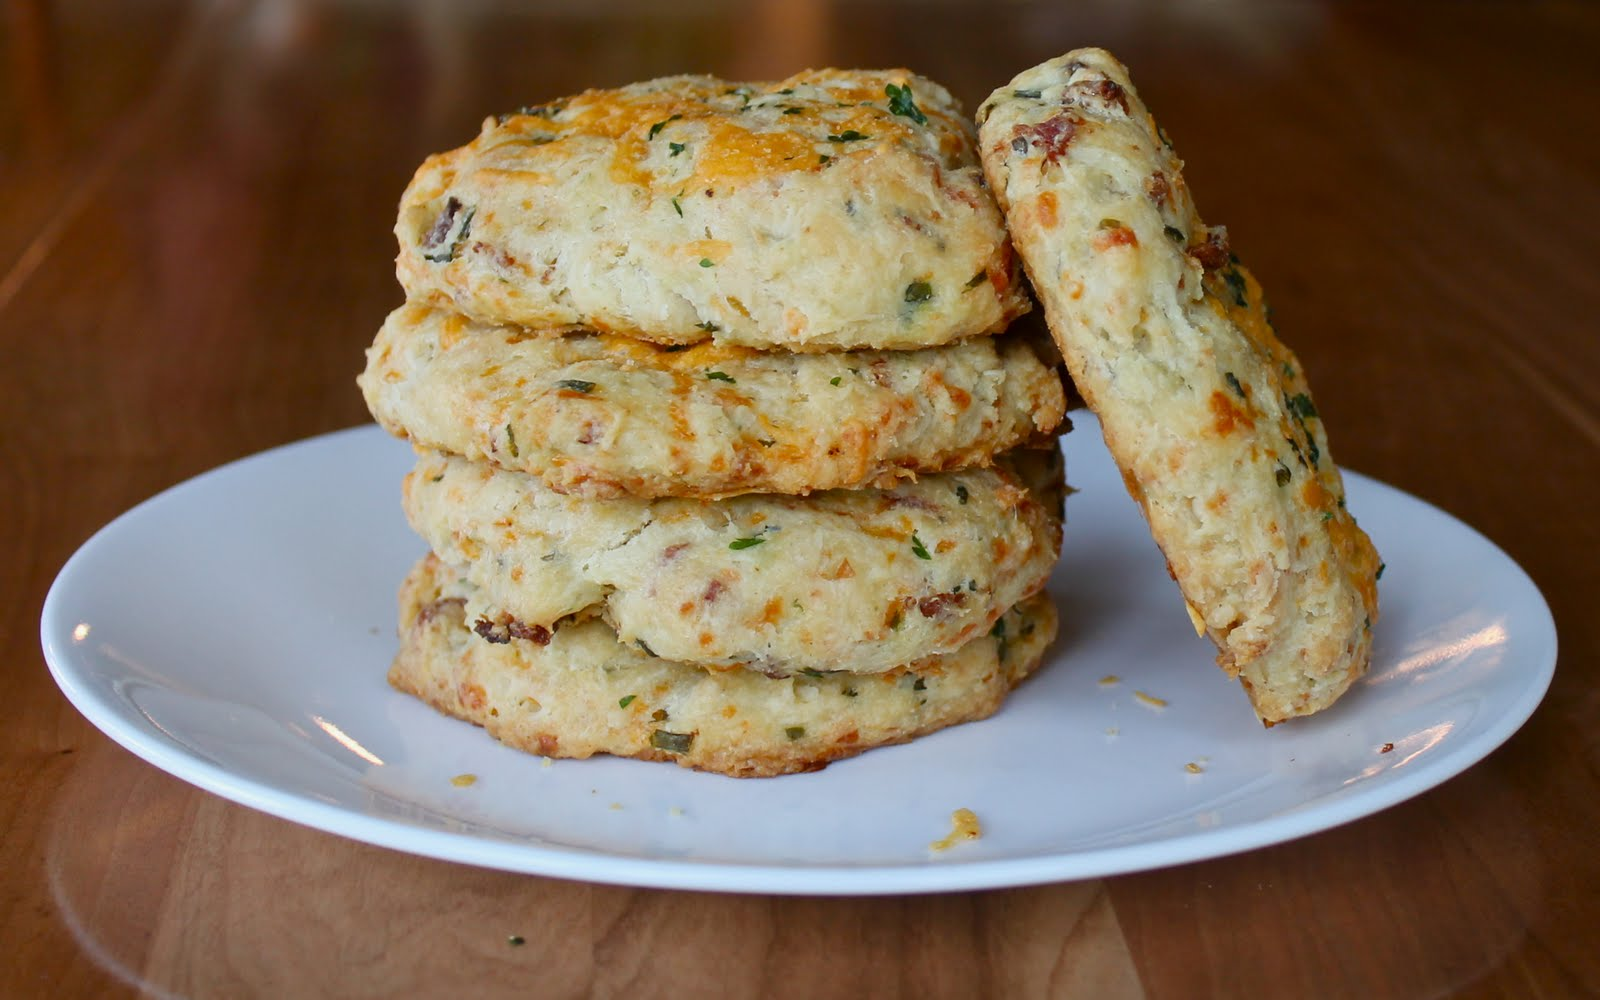 Yammie's Noshery: Cheddar Bacon Biscuits